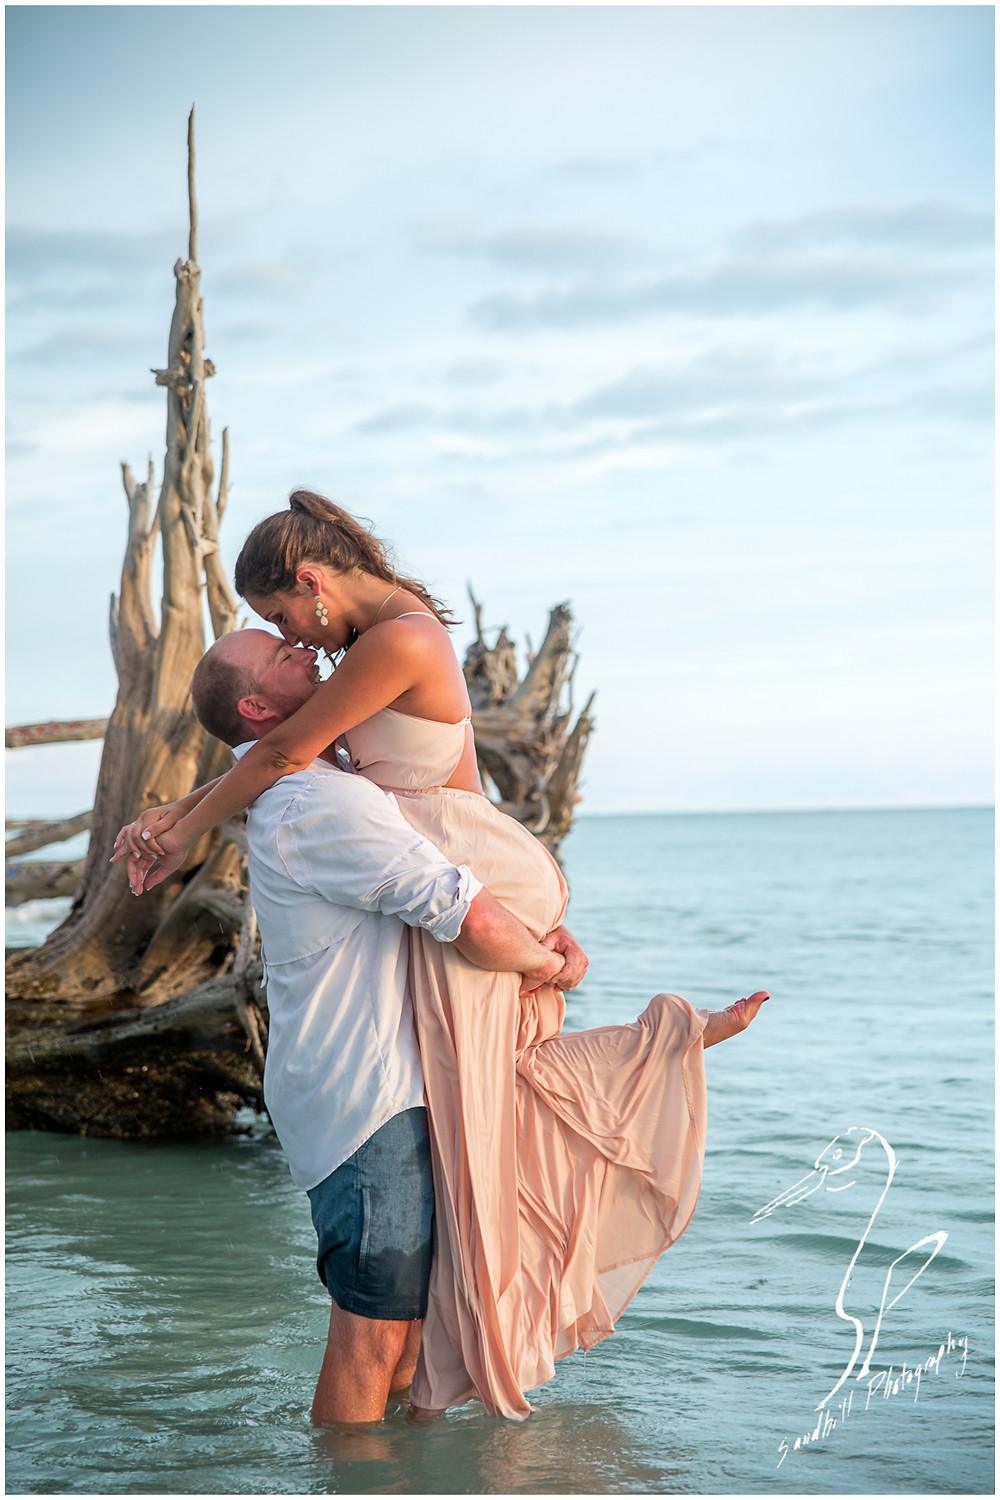 Beer Can Island Engagement Photography, an Engaged man lifts his fiance up out of the water on Longboat Key